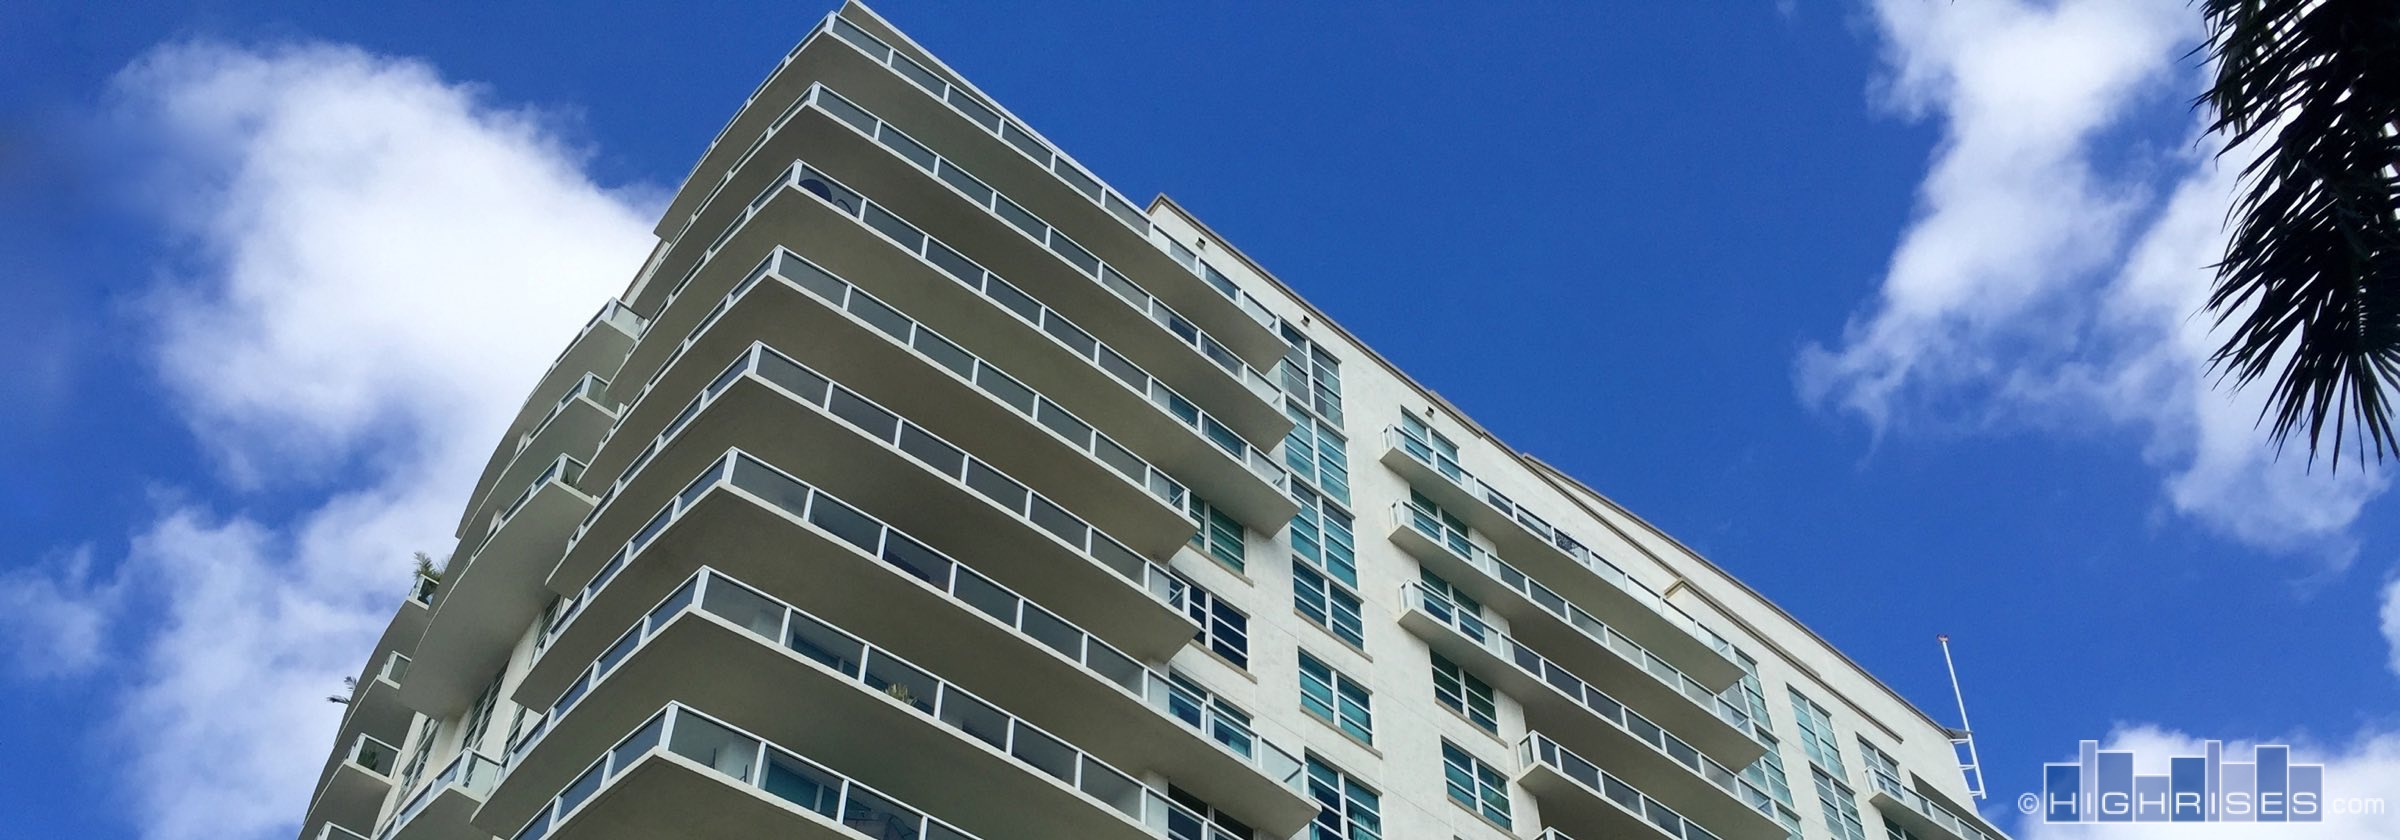 The Port Condos And Marina Of Ft Lauderdale 1819 Se 17th St